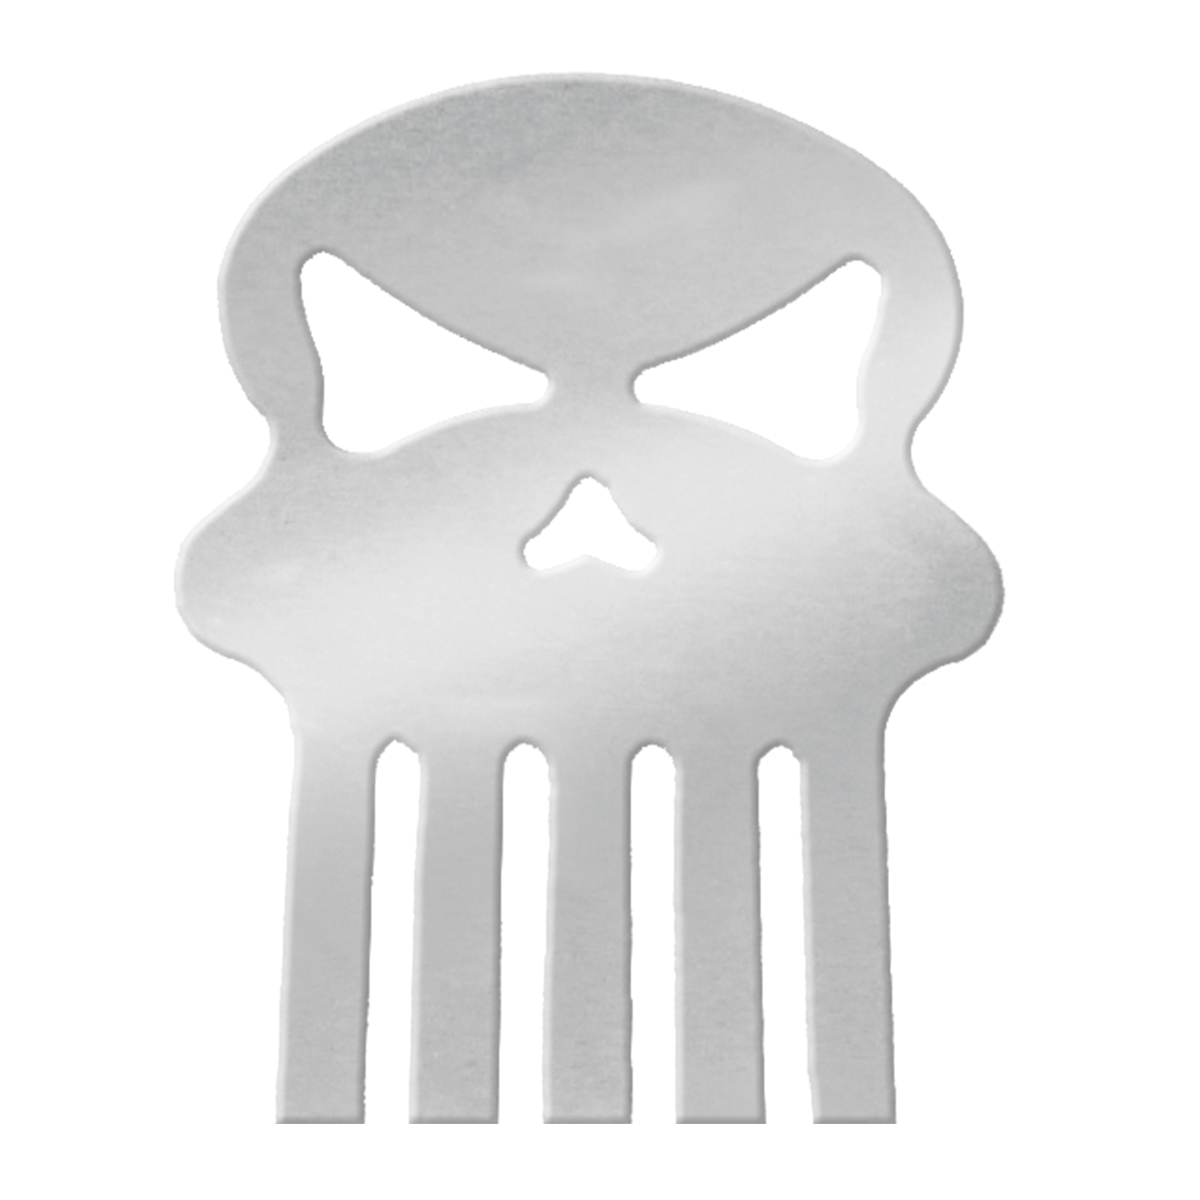 #94241 Small Skull Cut Out